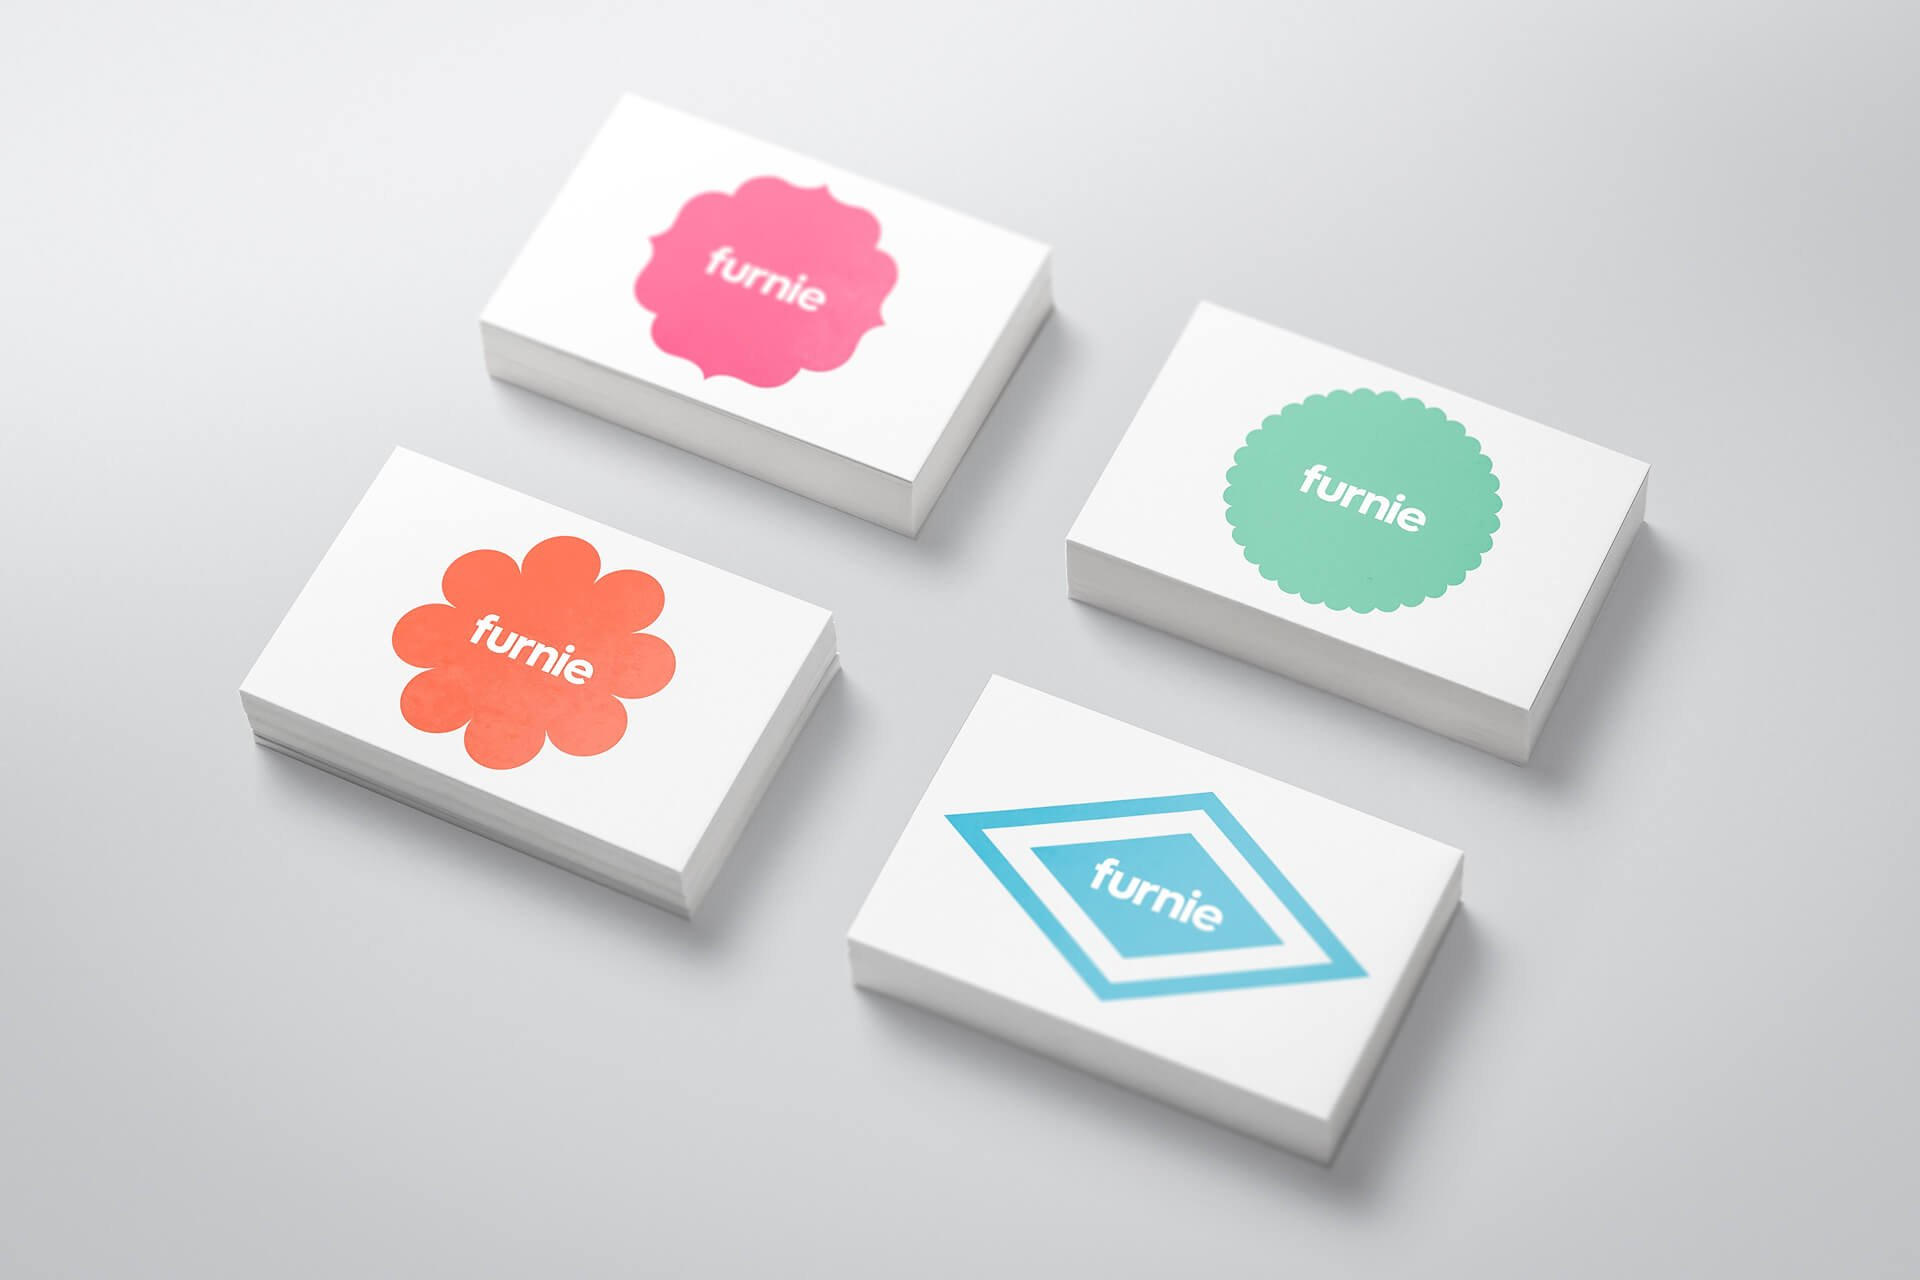 Furnie business cards